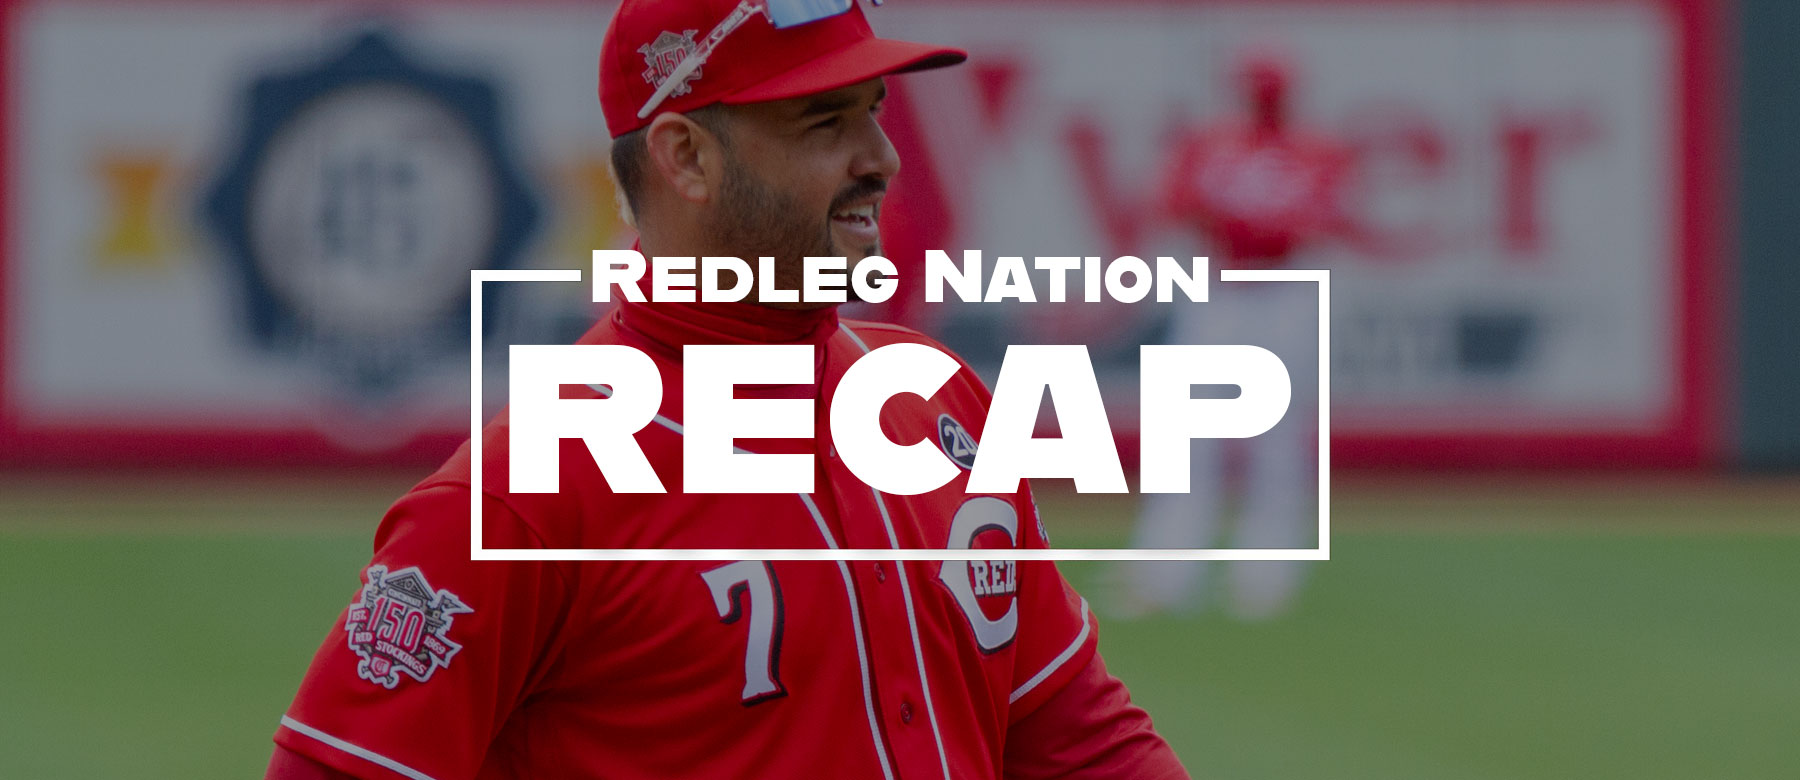 Reds homers and bullpen lead to a win over Seattle